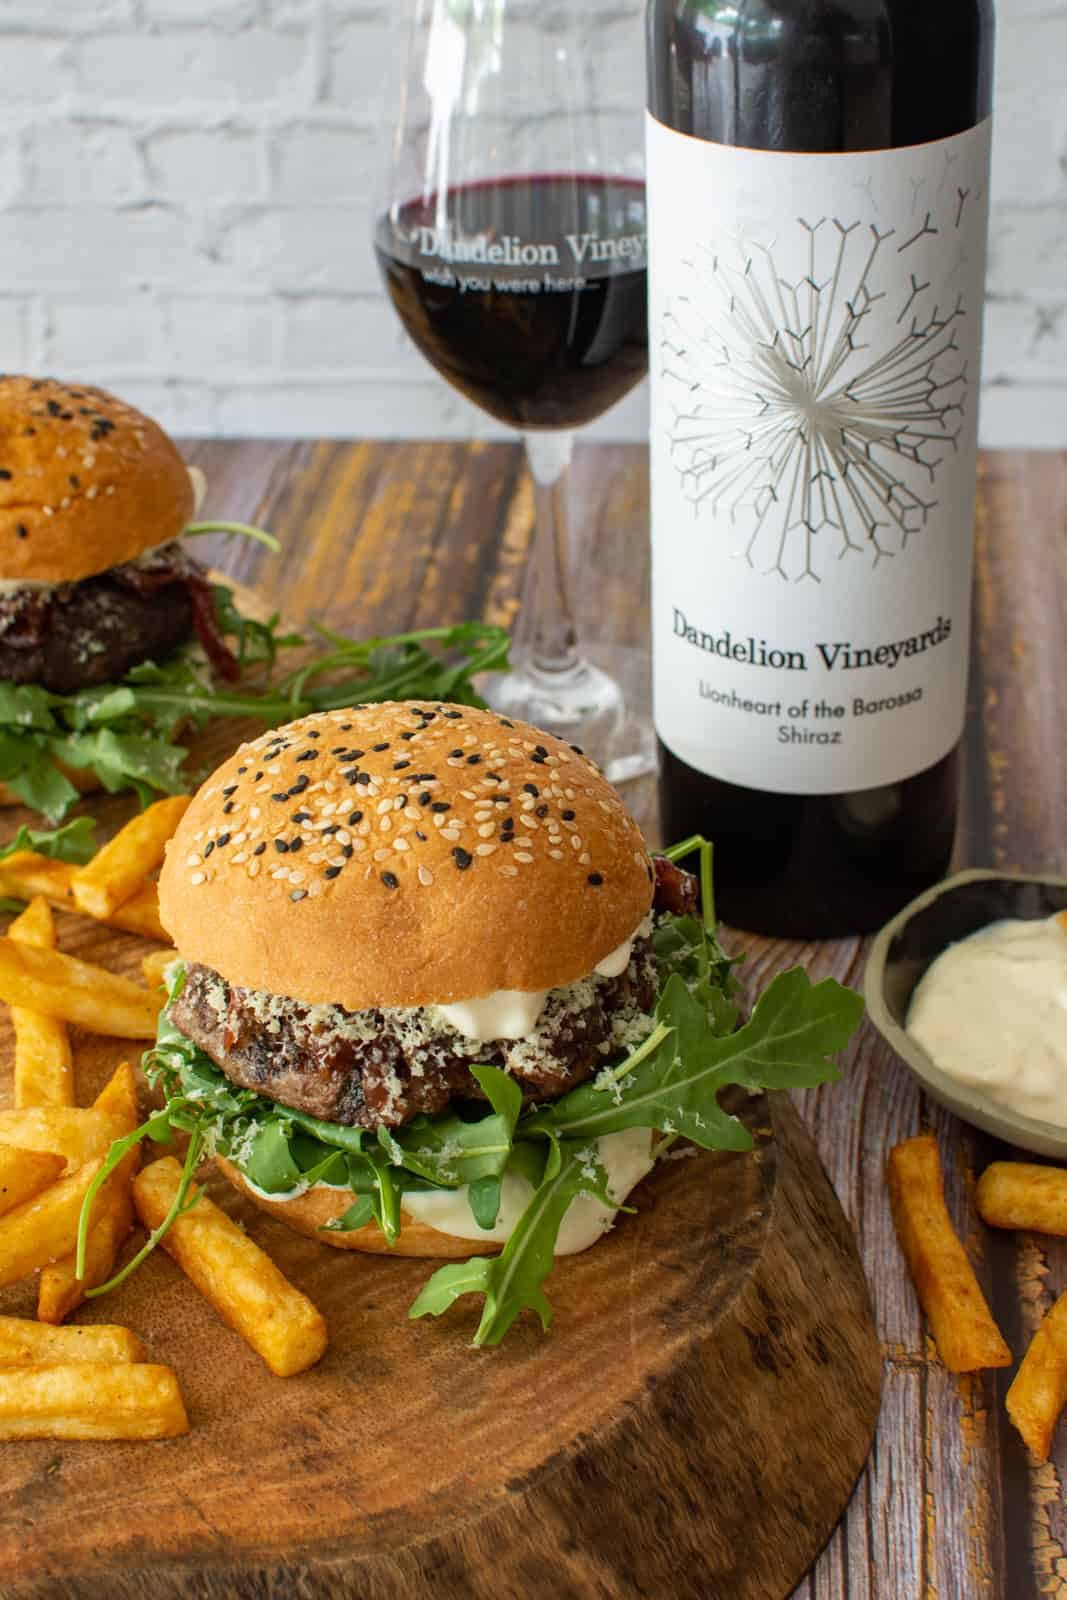 Two wagyu beef burgers on wooden board with chips and bottle of Dandelion lionheart shiraz